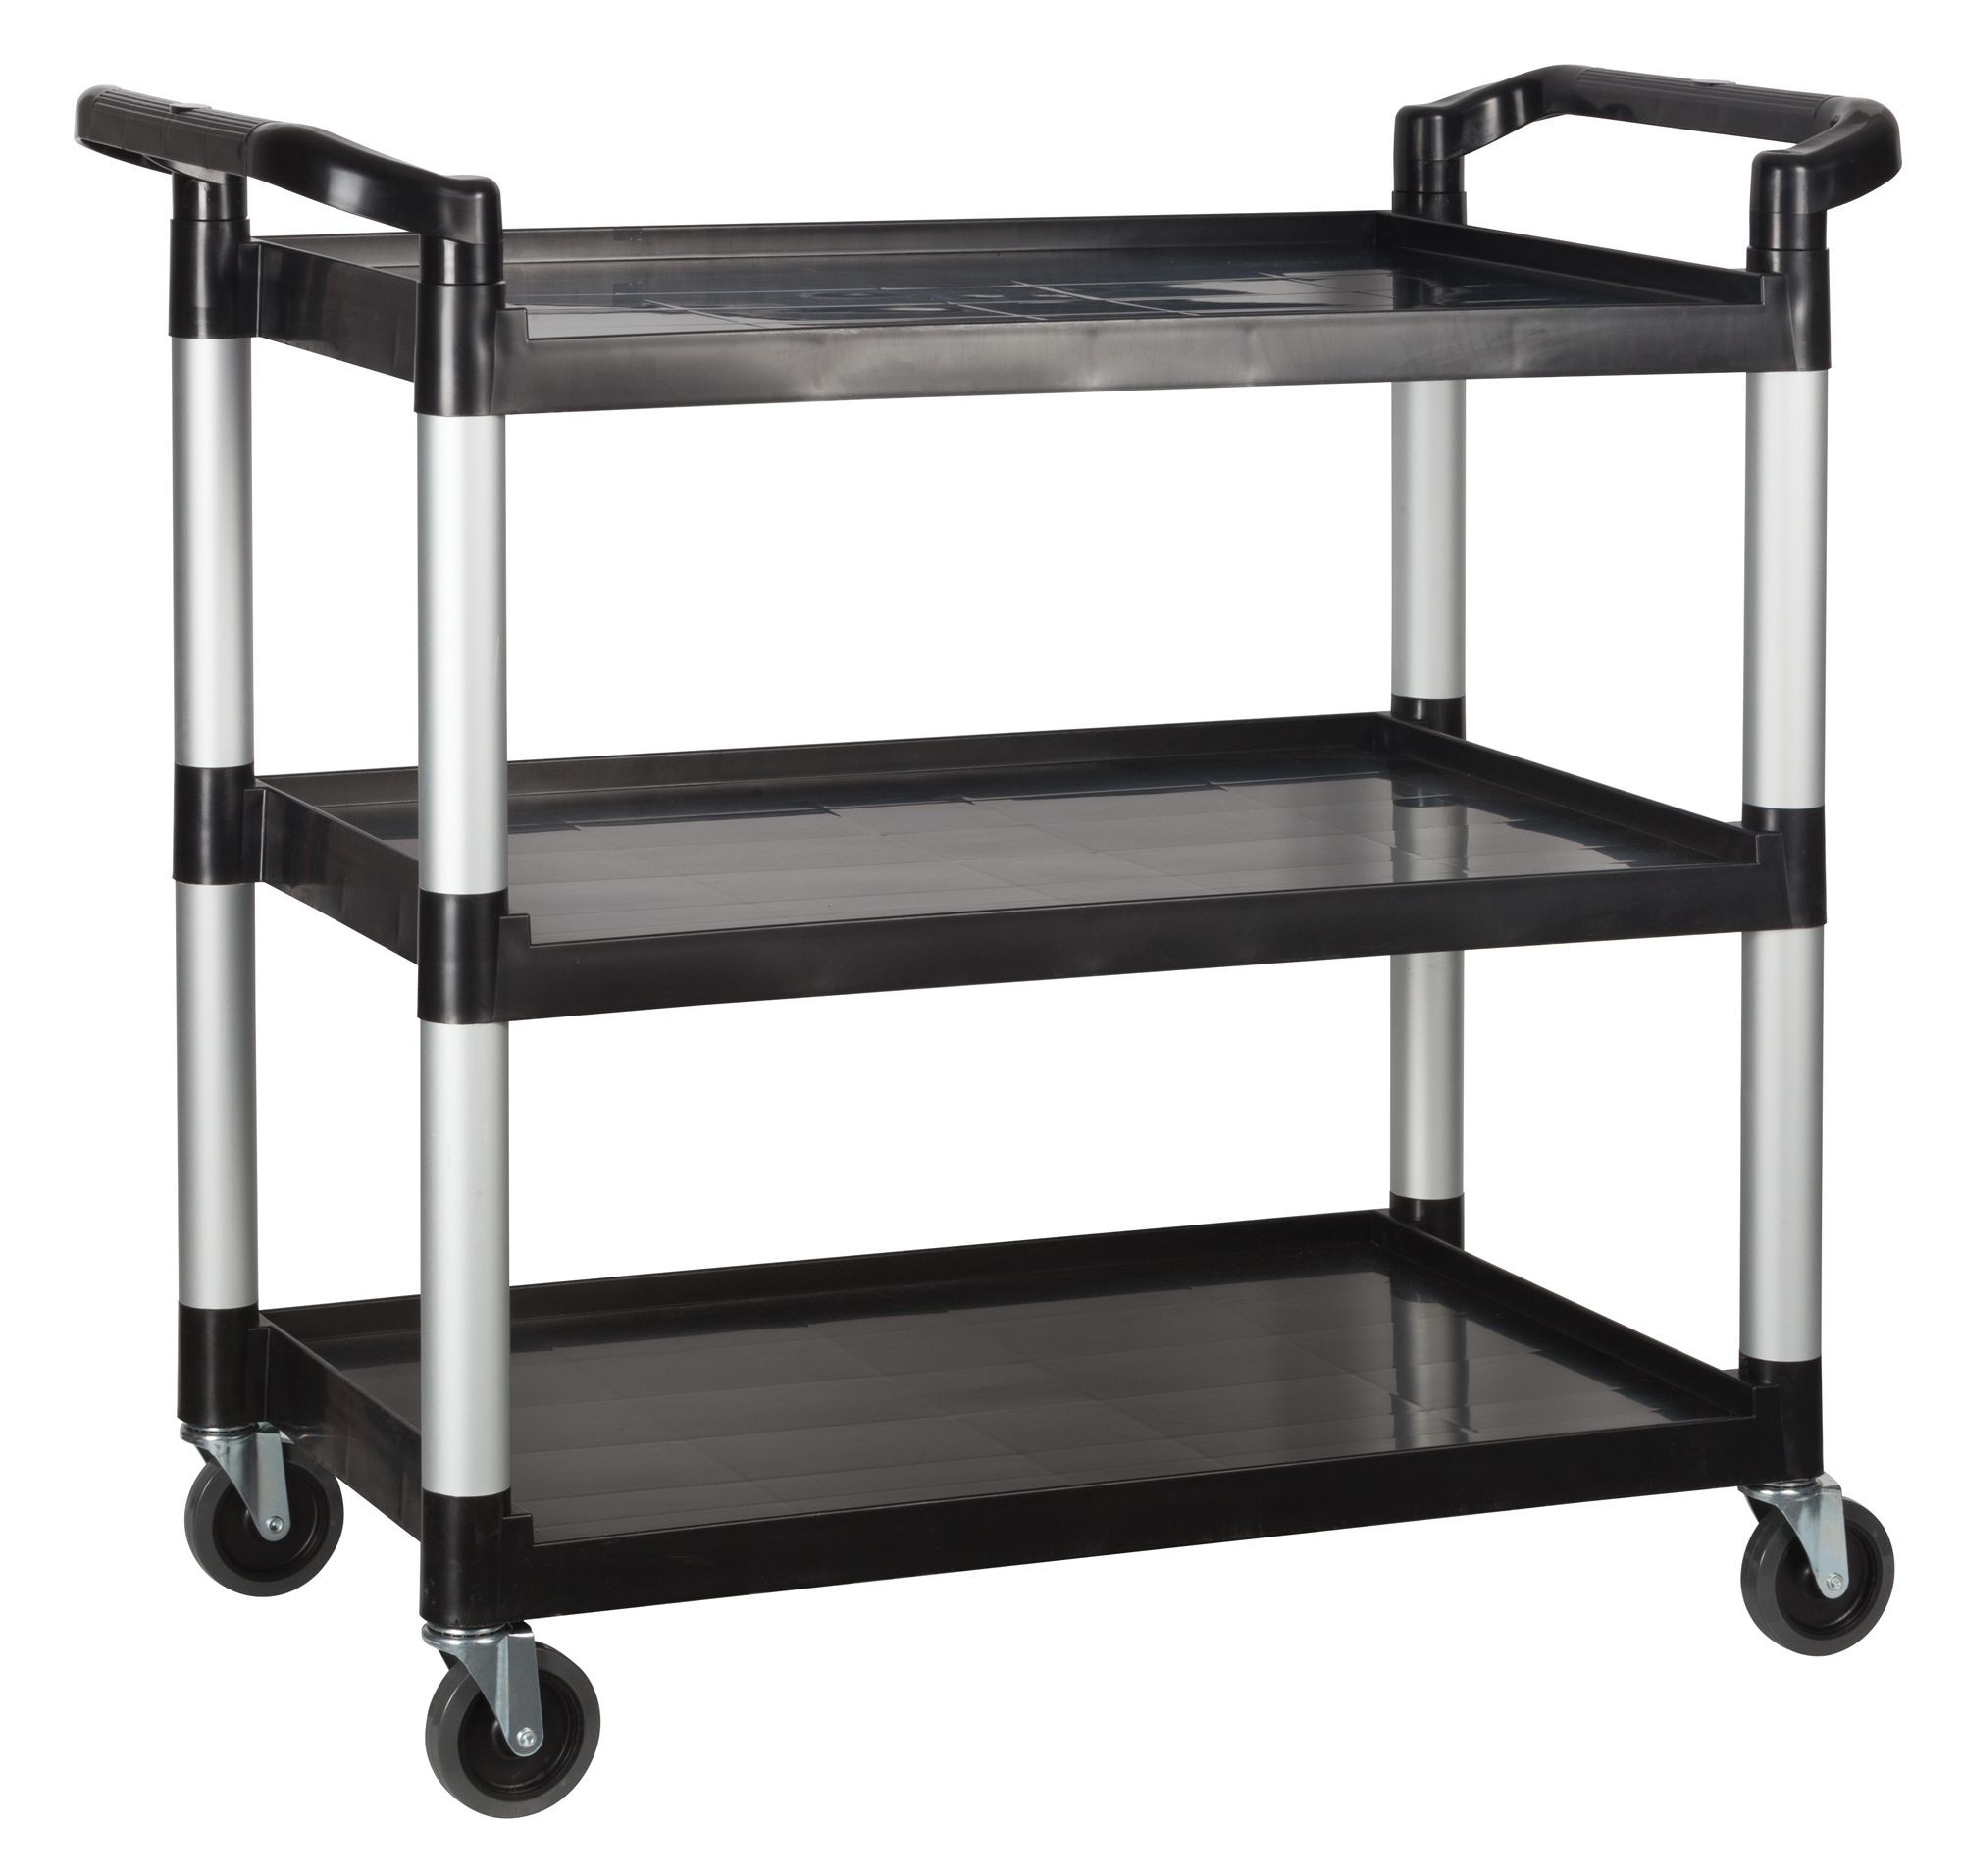 "Winco UC-40K 3 Tier Black Utility Cart 40"" x 19-3/4"" x 37-1/2"